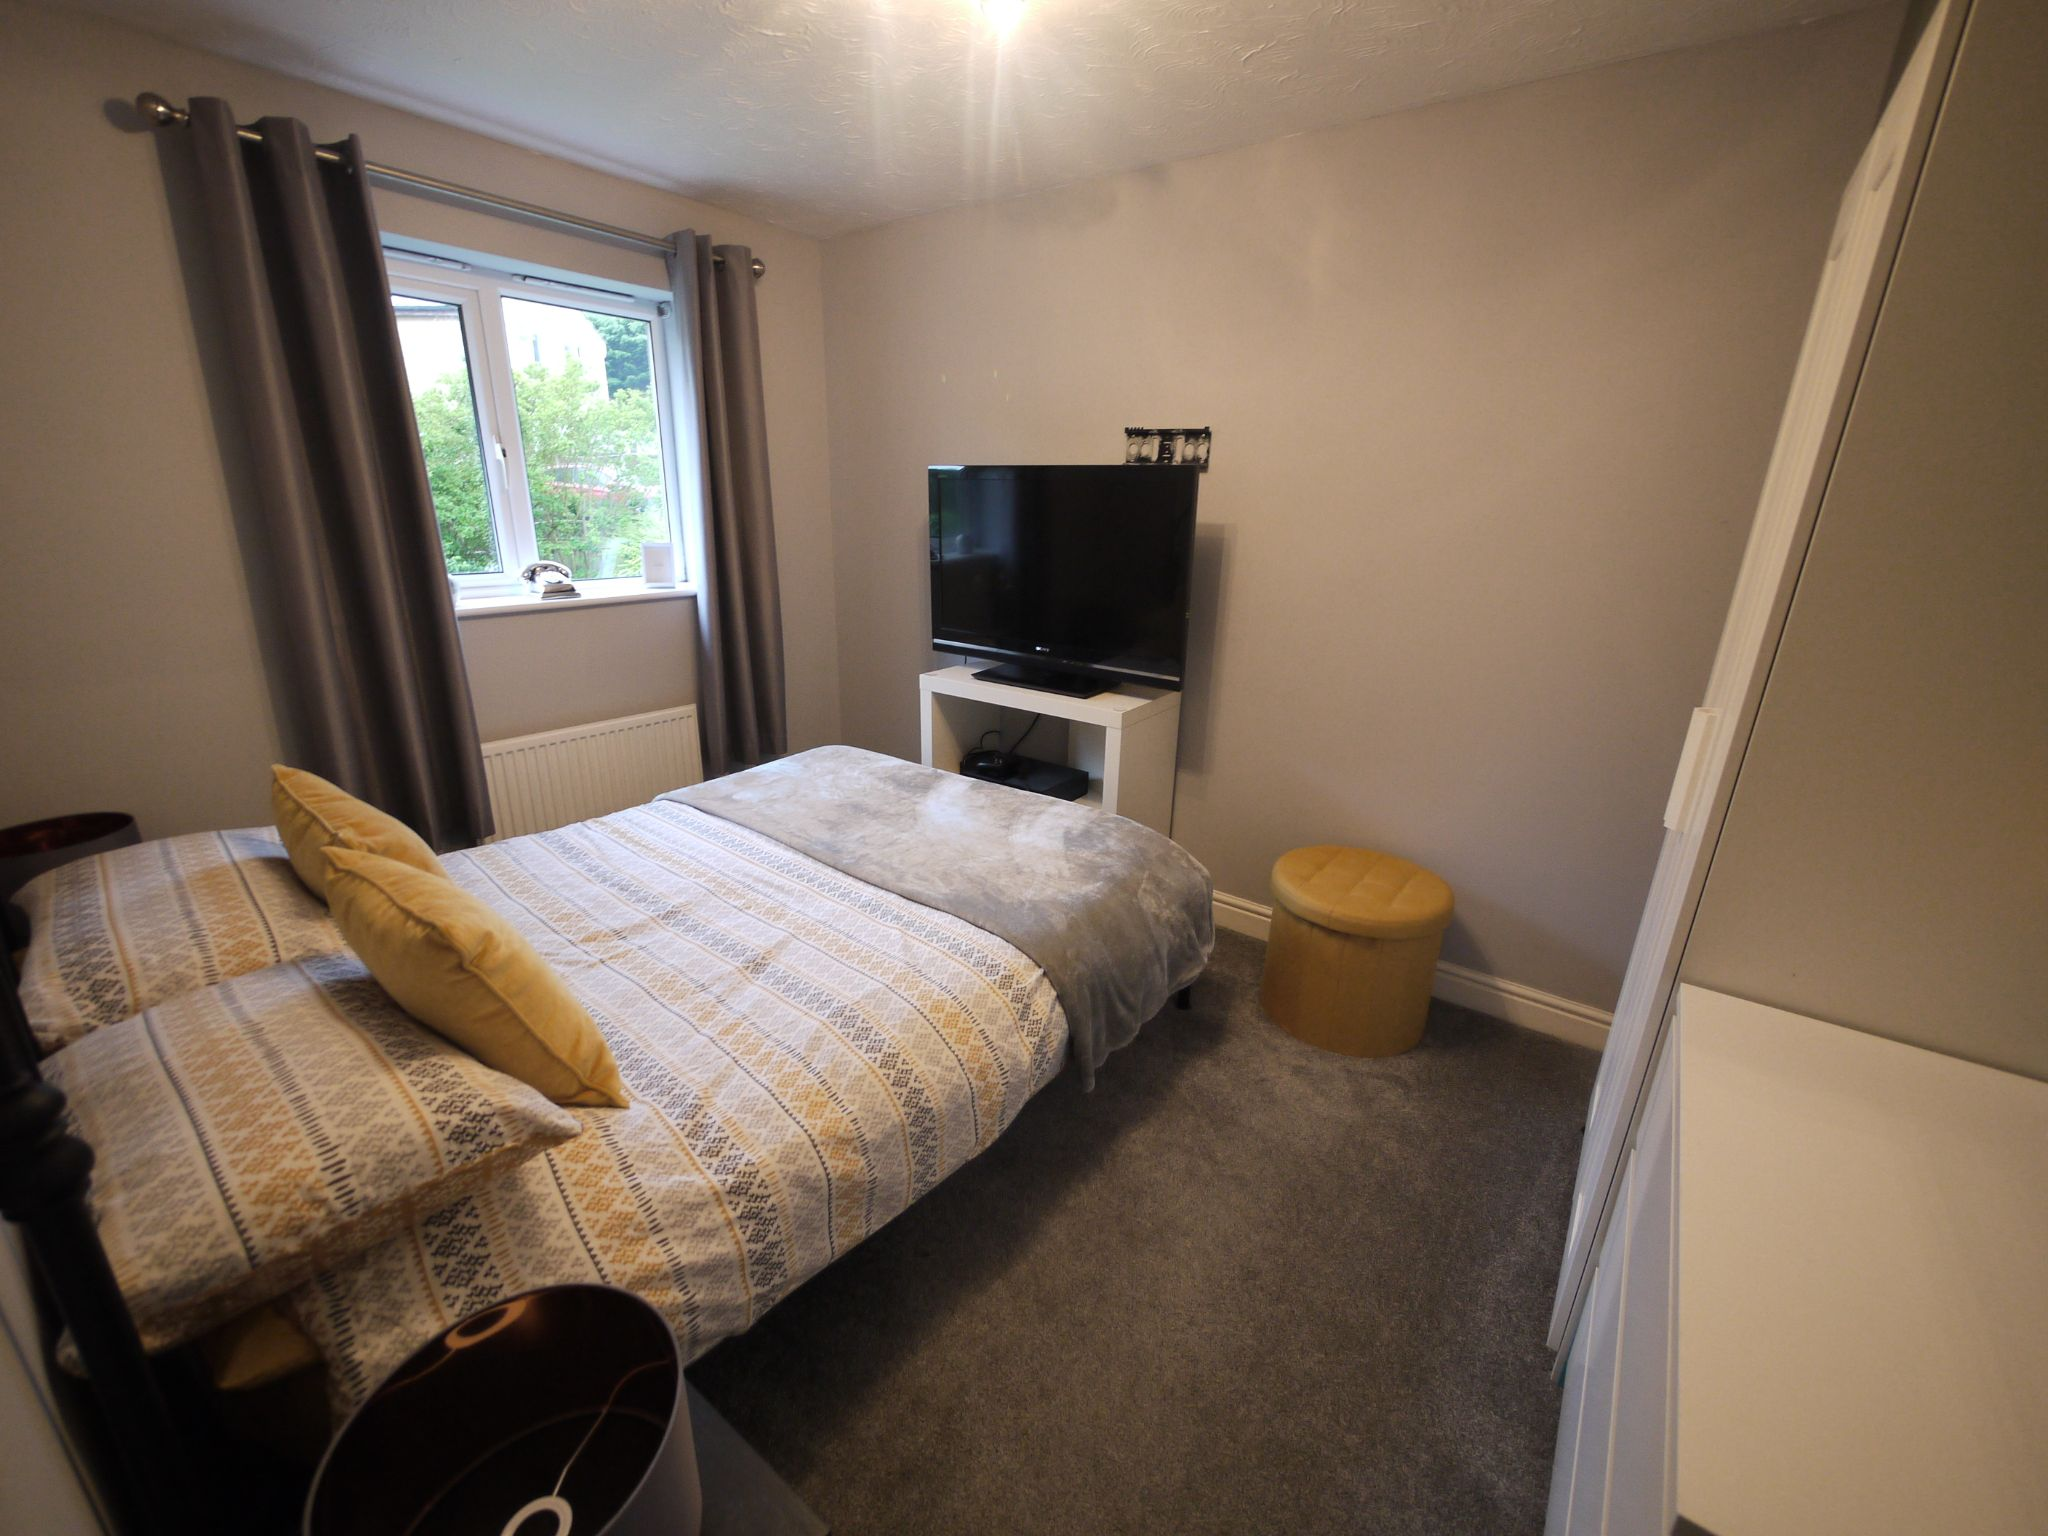 4 bedroom town house For Sale in Brighouse - Bedroom 2.